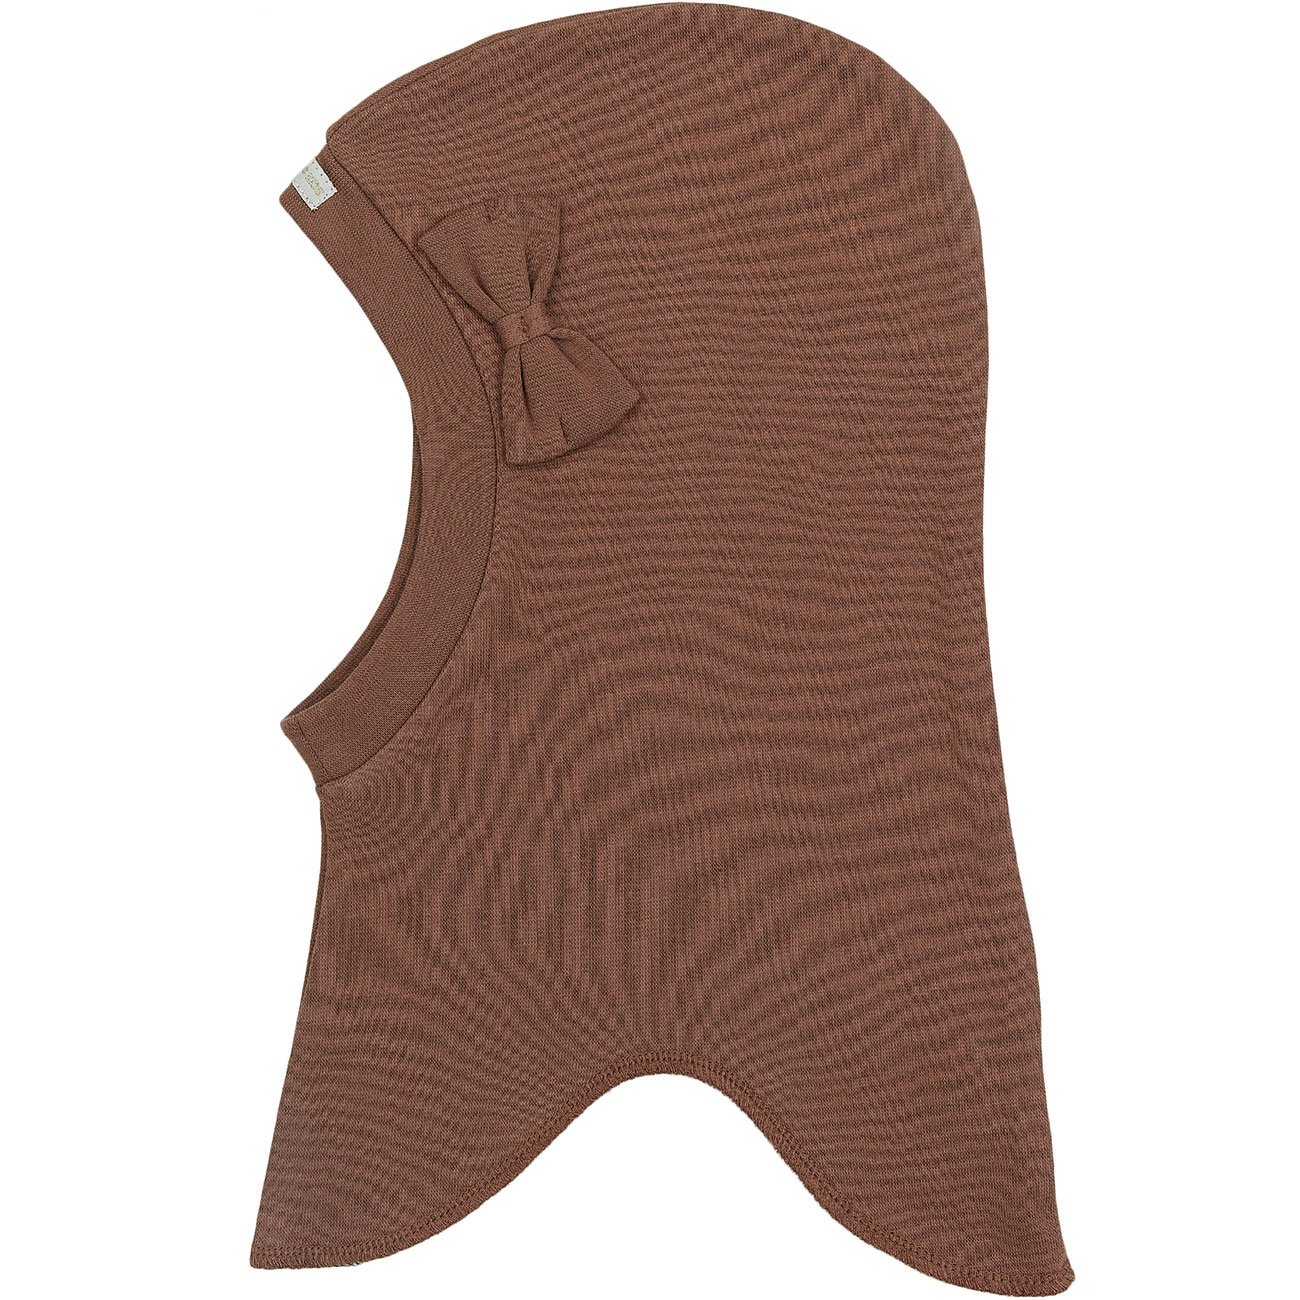 Racing-Kids-hue-balaclava-elefanthue-bow-sloejfe-brun-brown